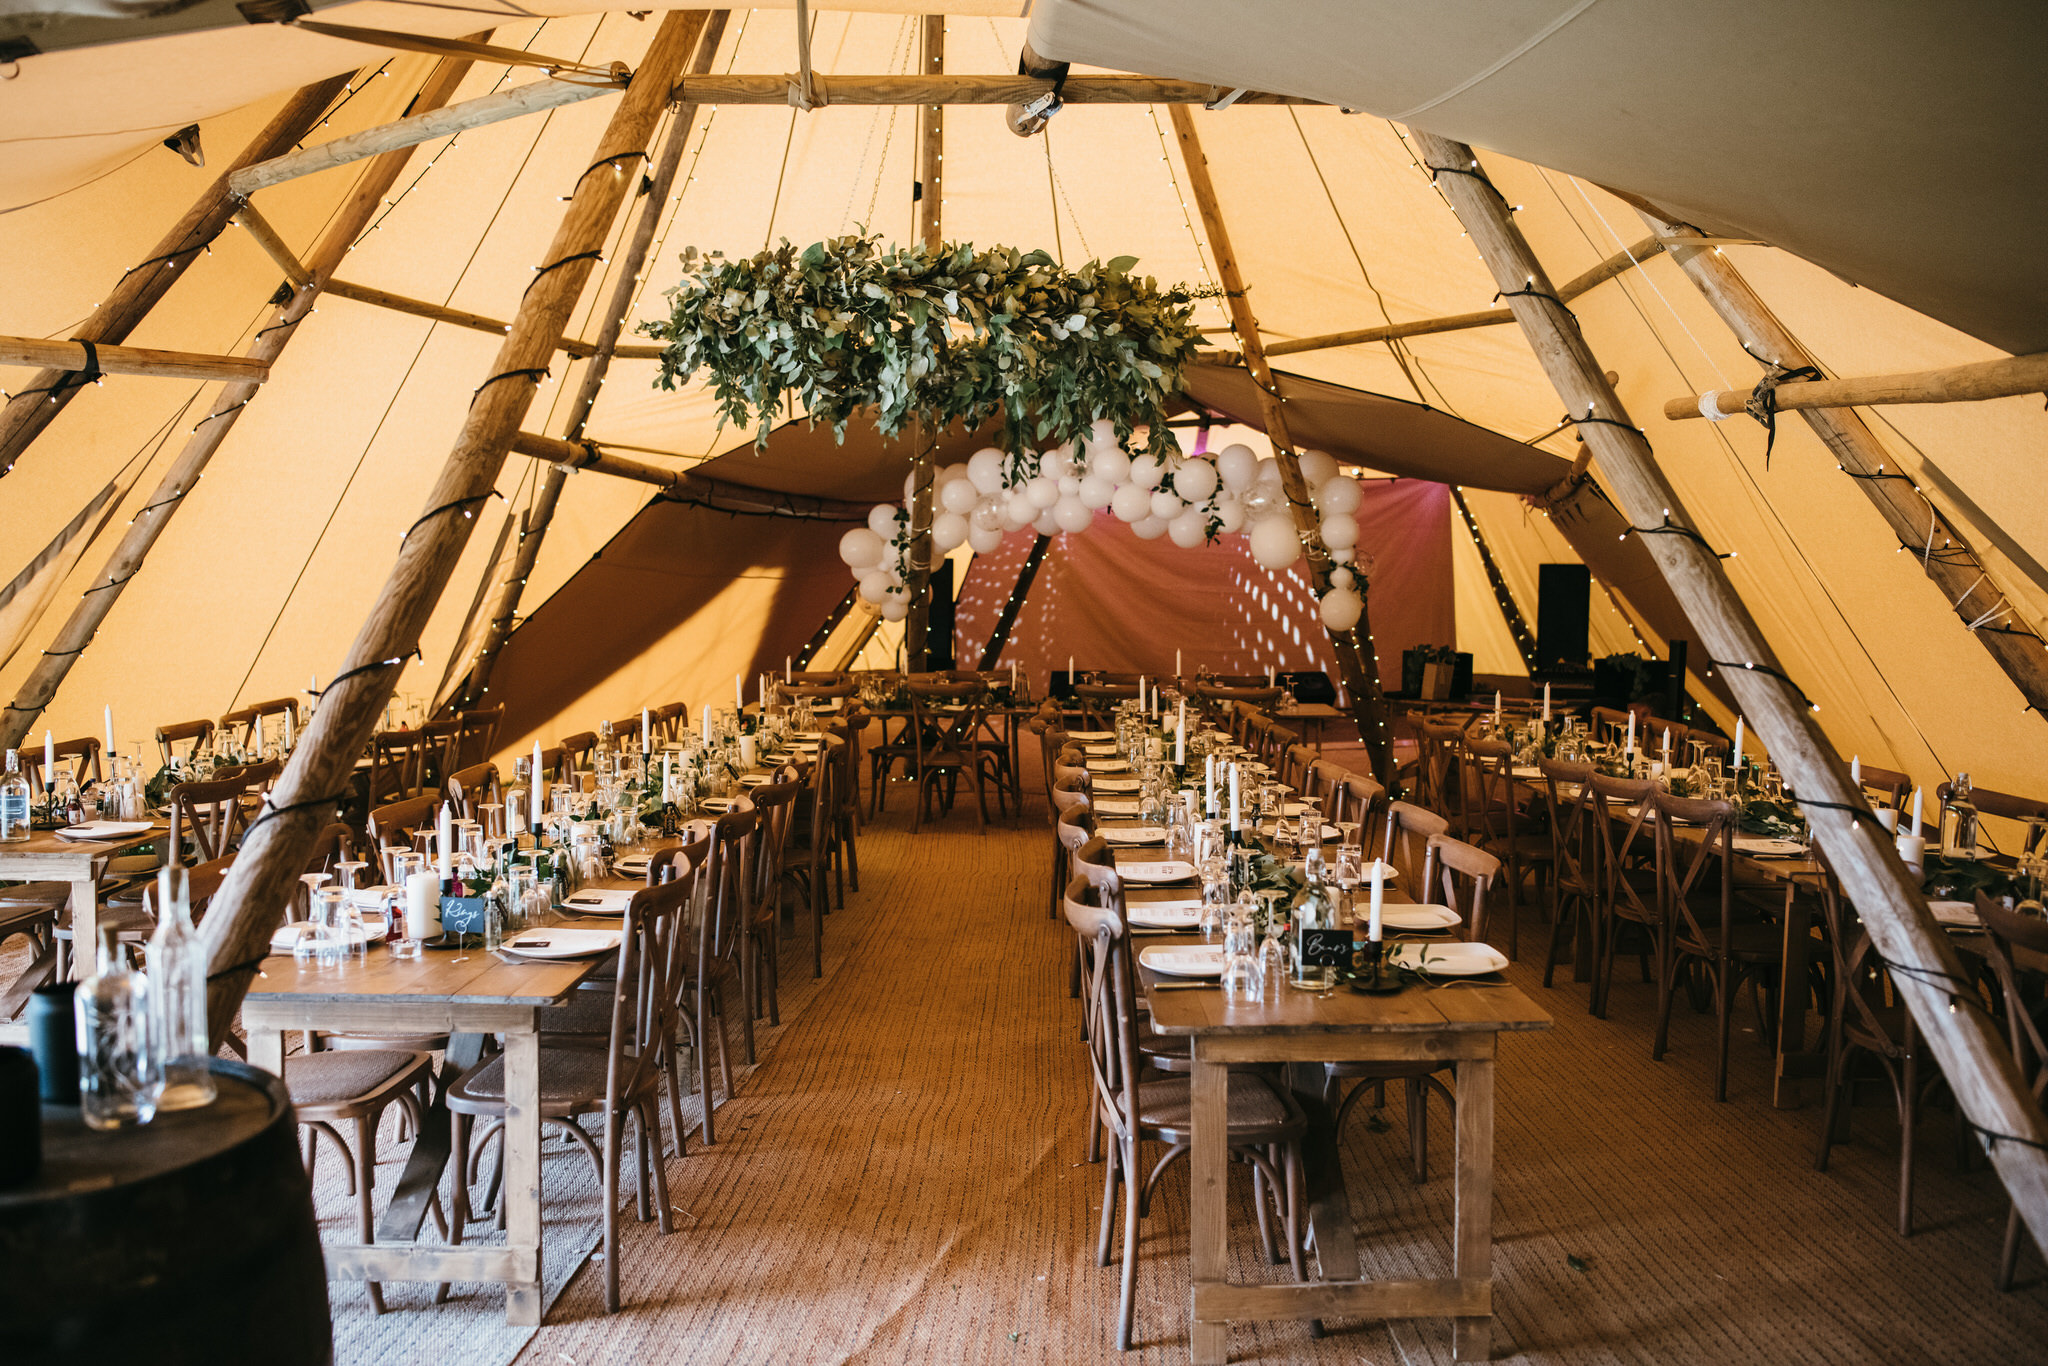 Tipi tent wedding